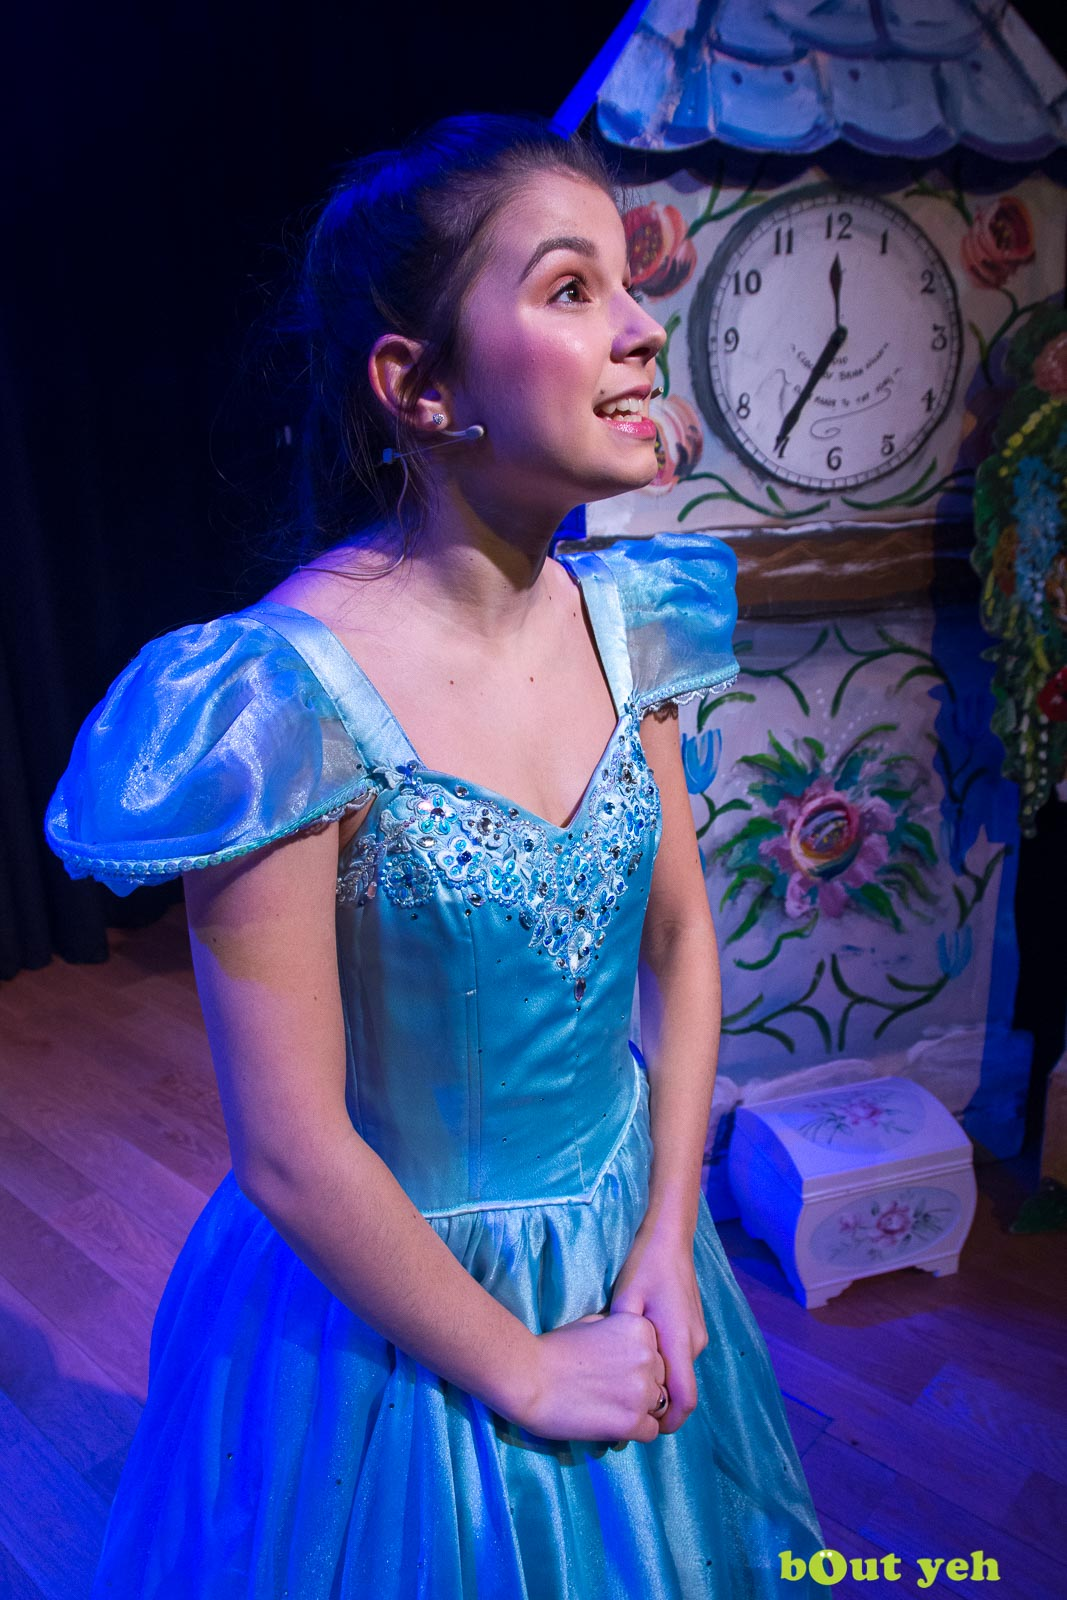 PR photographers Belfast portfolio photo 9944 of Cinderella pantomime at the Old Courthouse Theatre Antrim - Bout Yeh photography and video production services Belfast, Northern Ireland